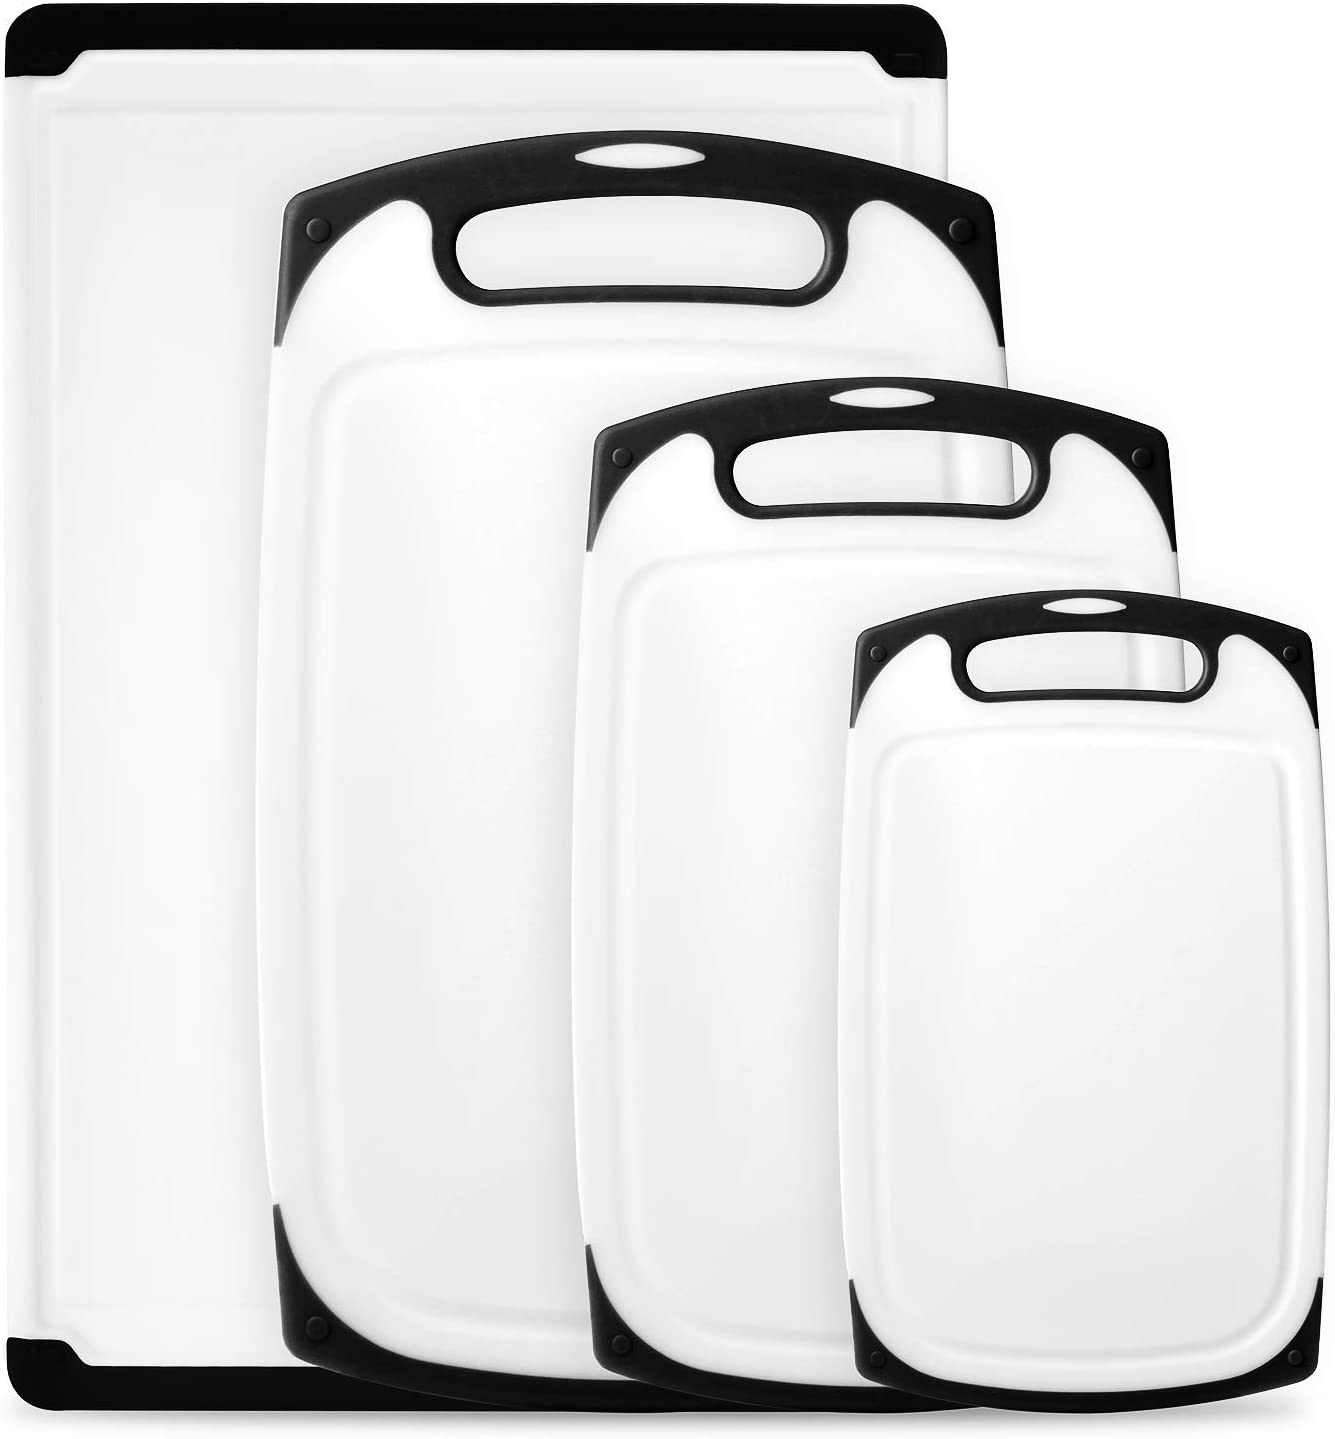 Kitchen Plastic Cutting Board Limited time cheap sale Lowest price challenge Set Dishwasher Safe - Cut Non-Slip